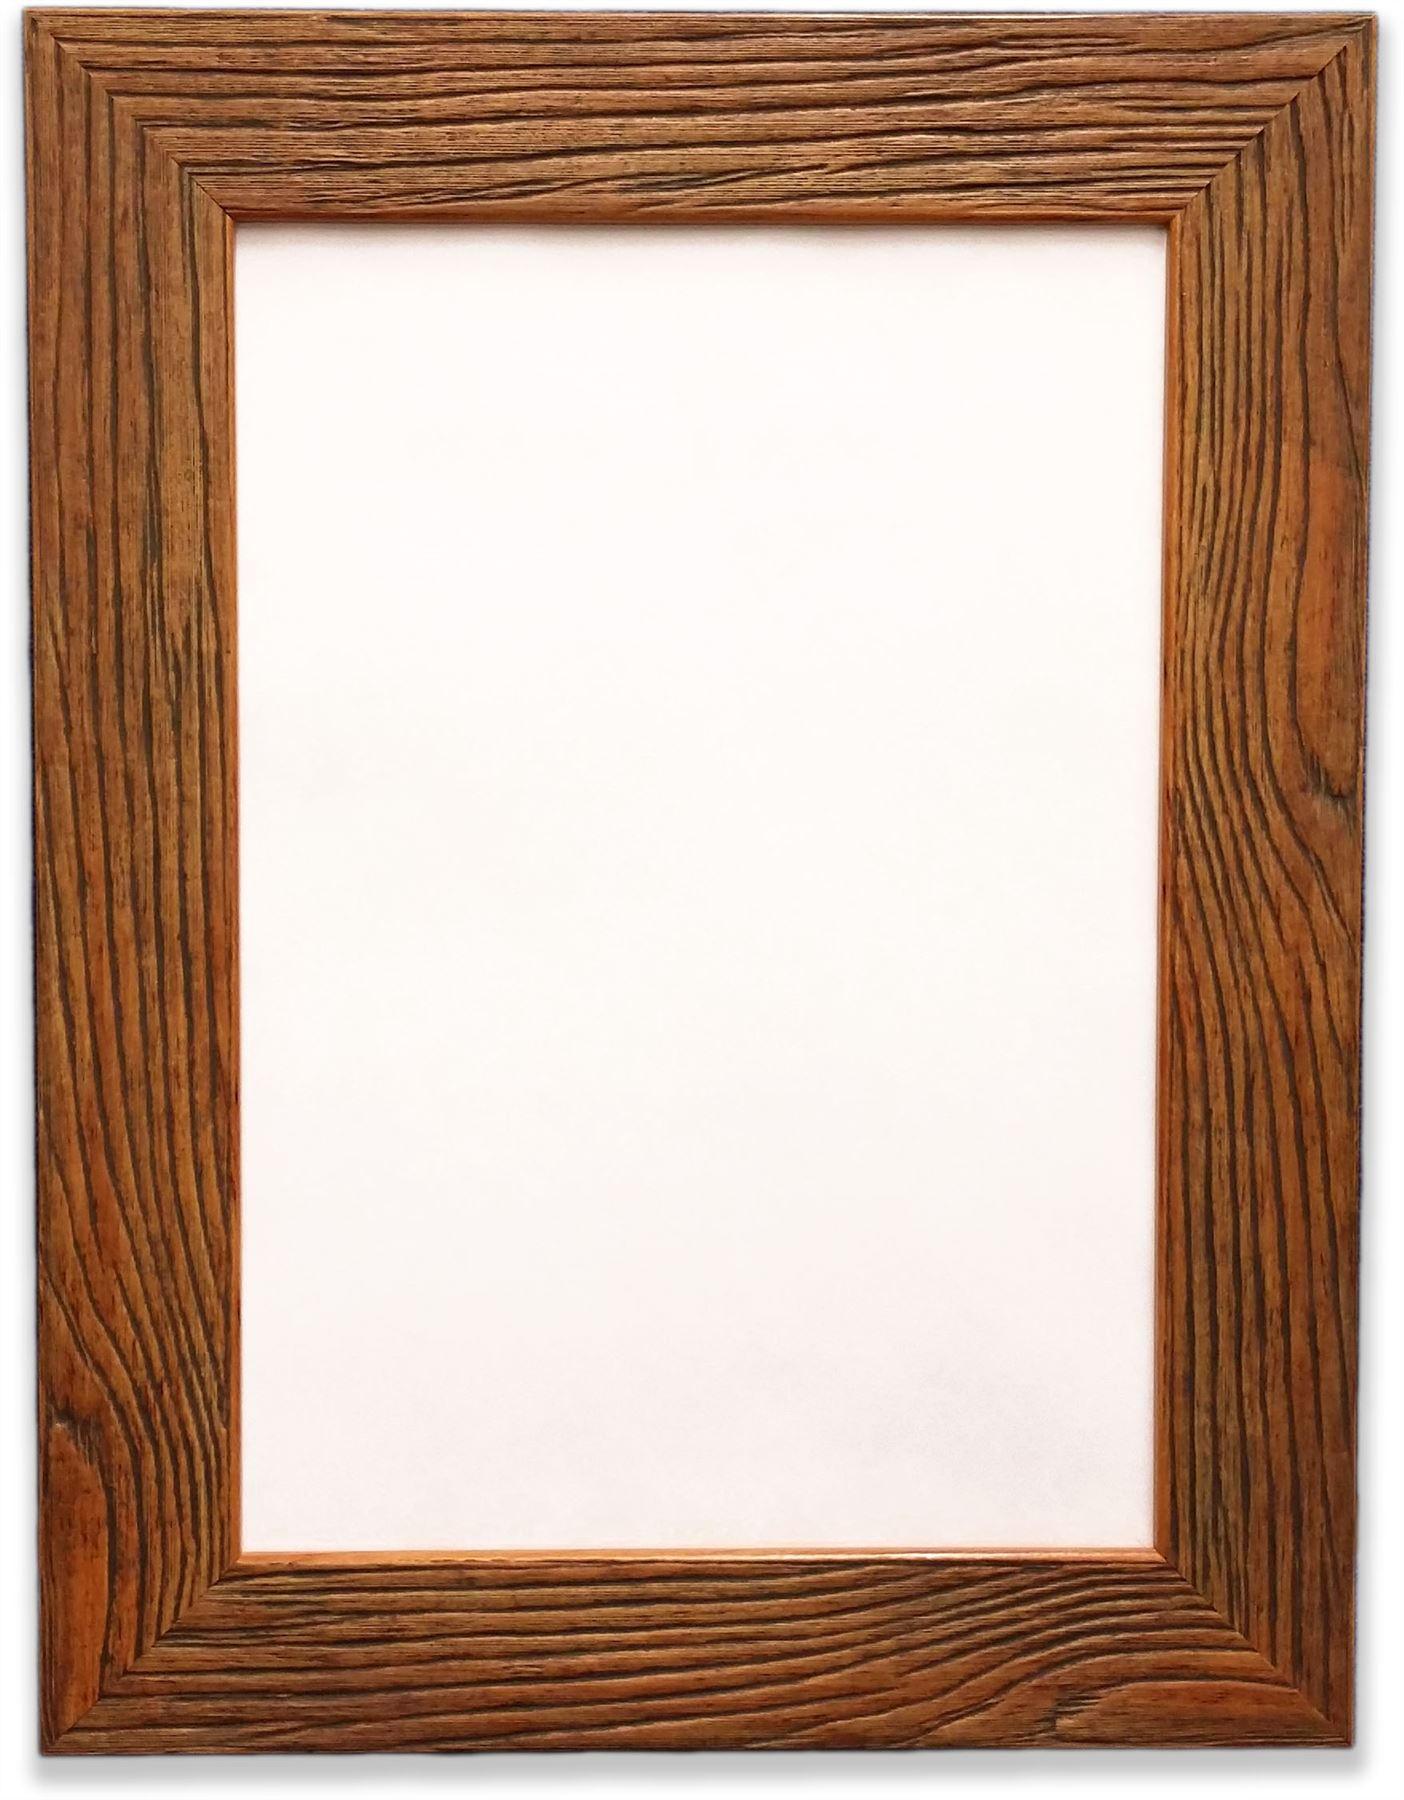 dark rustic wood grain finish photopicture frame 43mm wide various